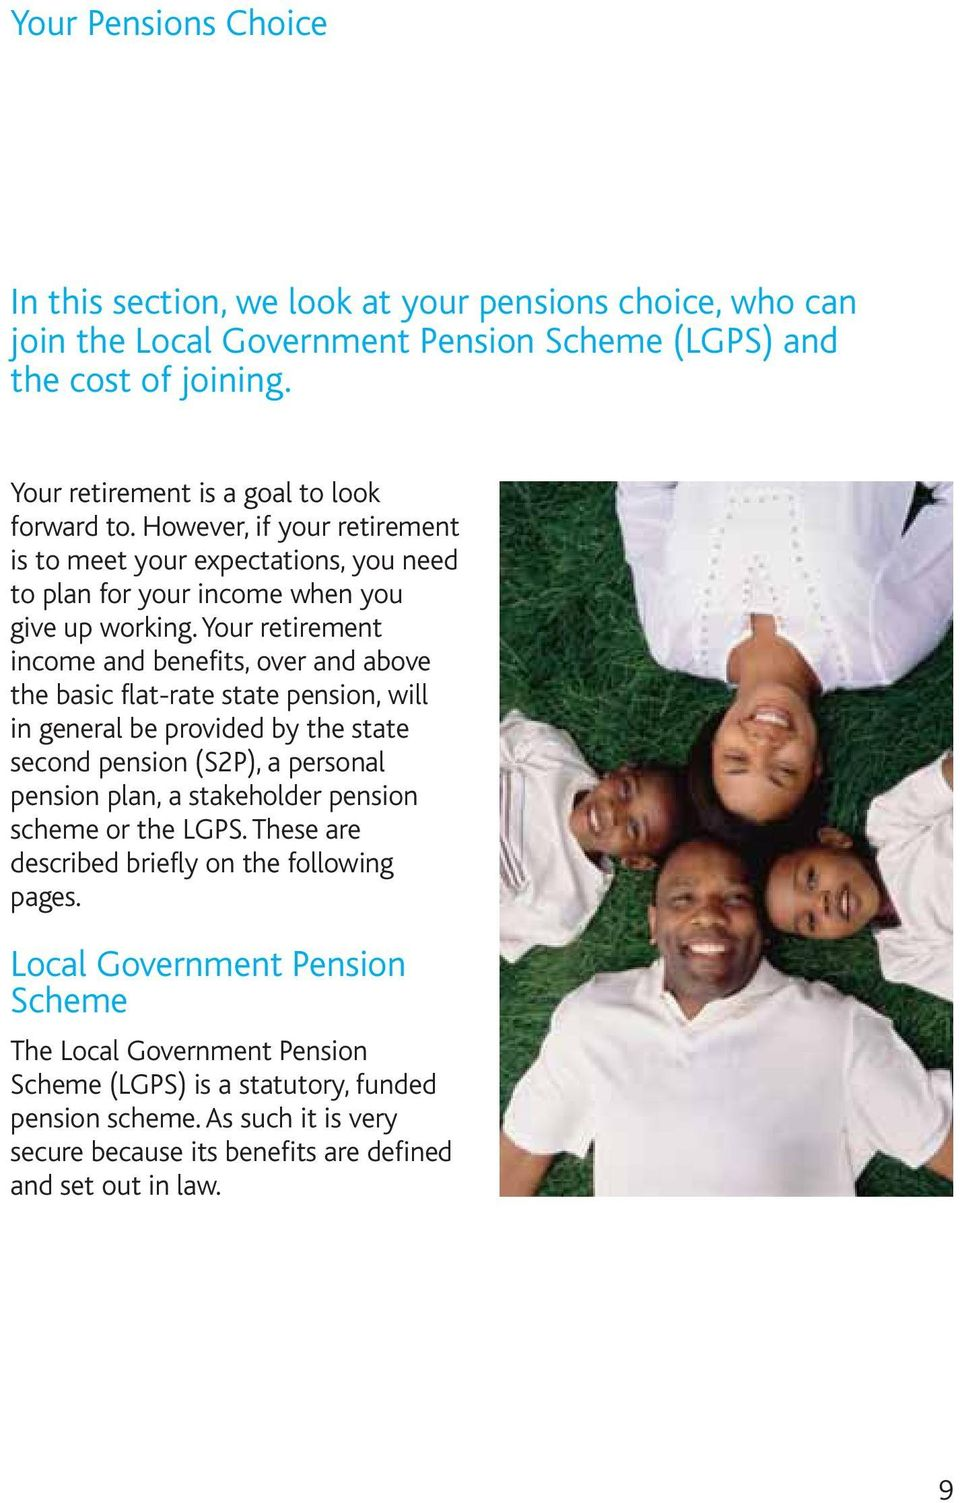 Your retirement income and benefits, over and above the basic flat-rate state pension, will in general be provided by the state second pension (S2P), a personal pension plan, a stakeholder